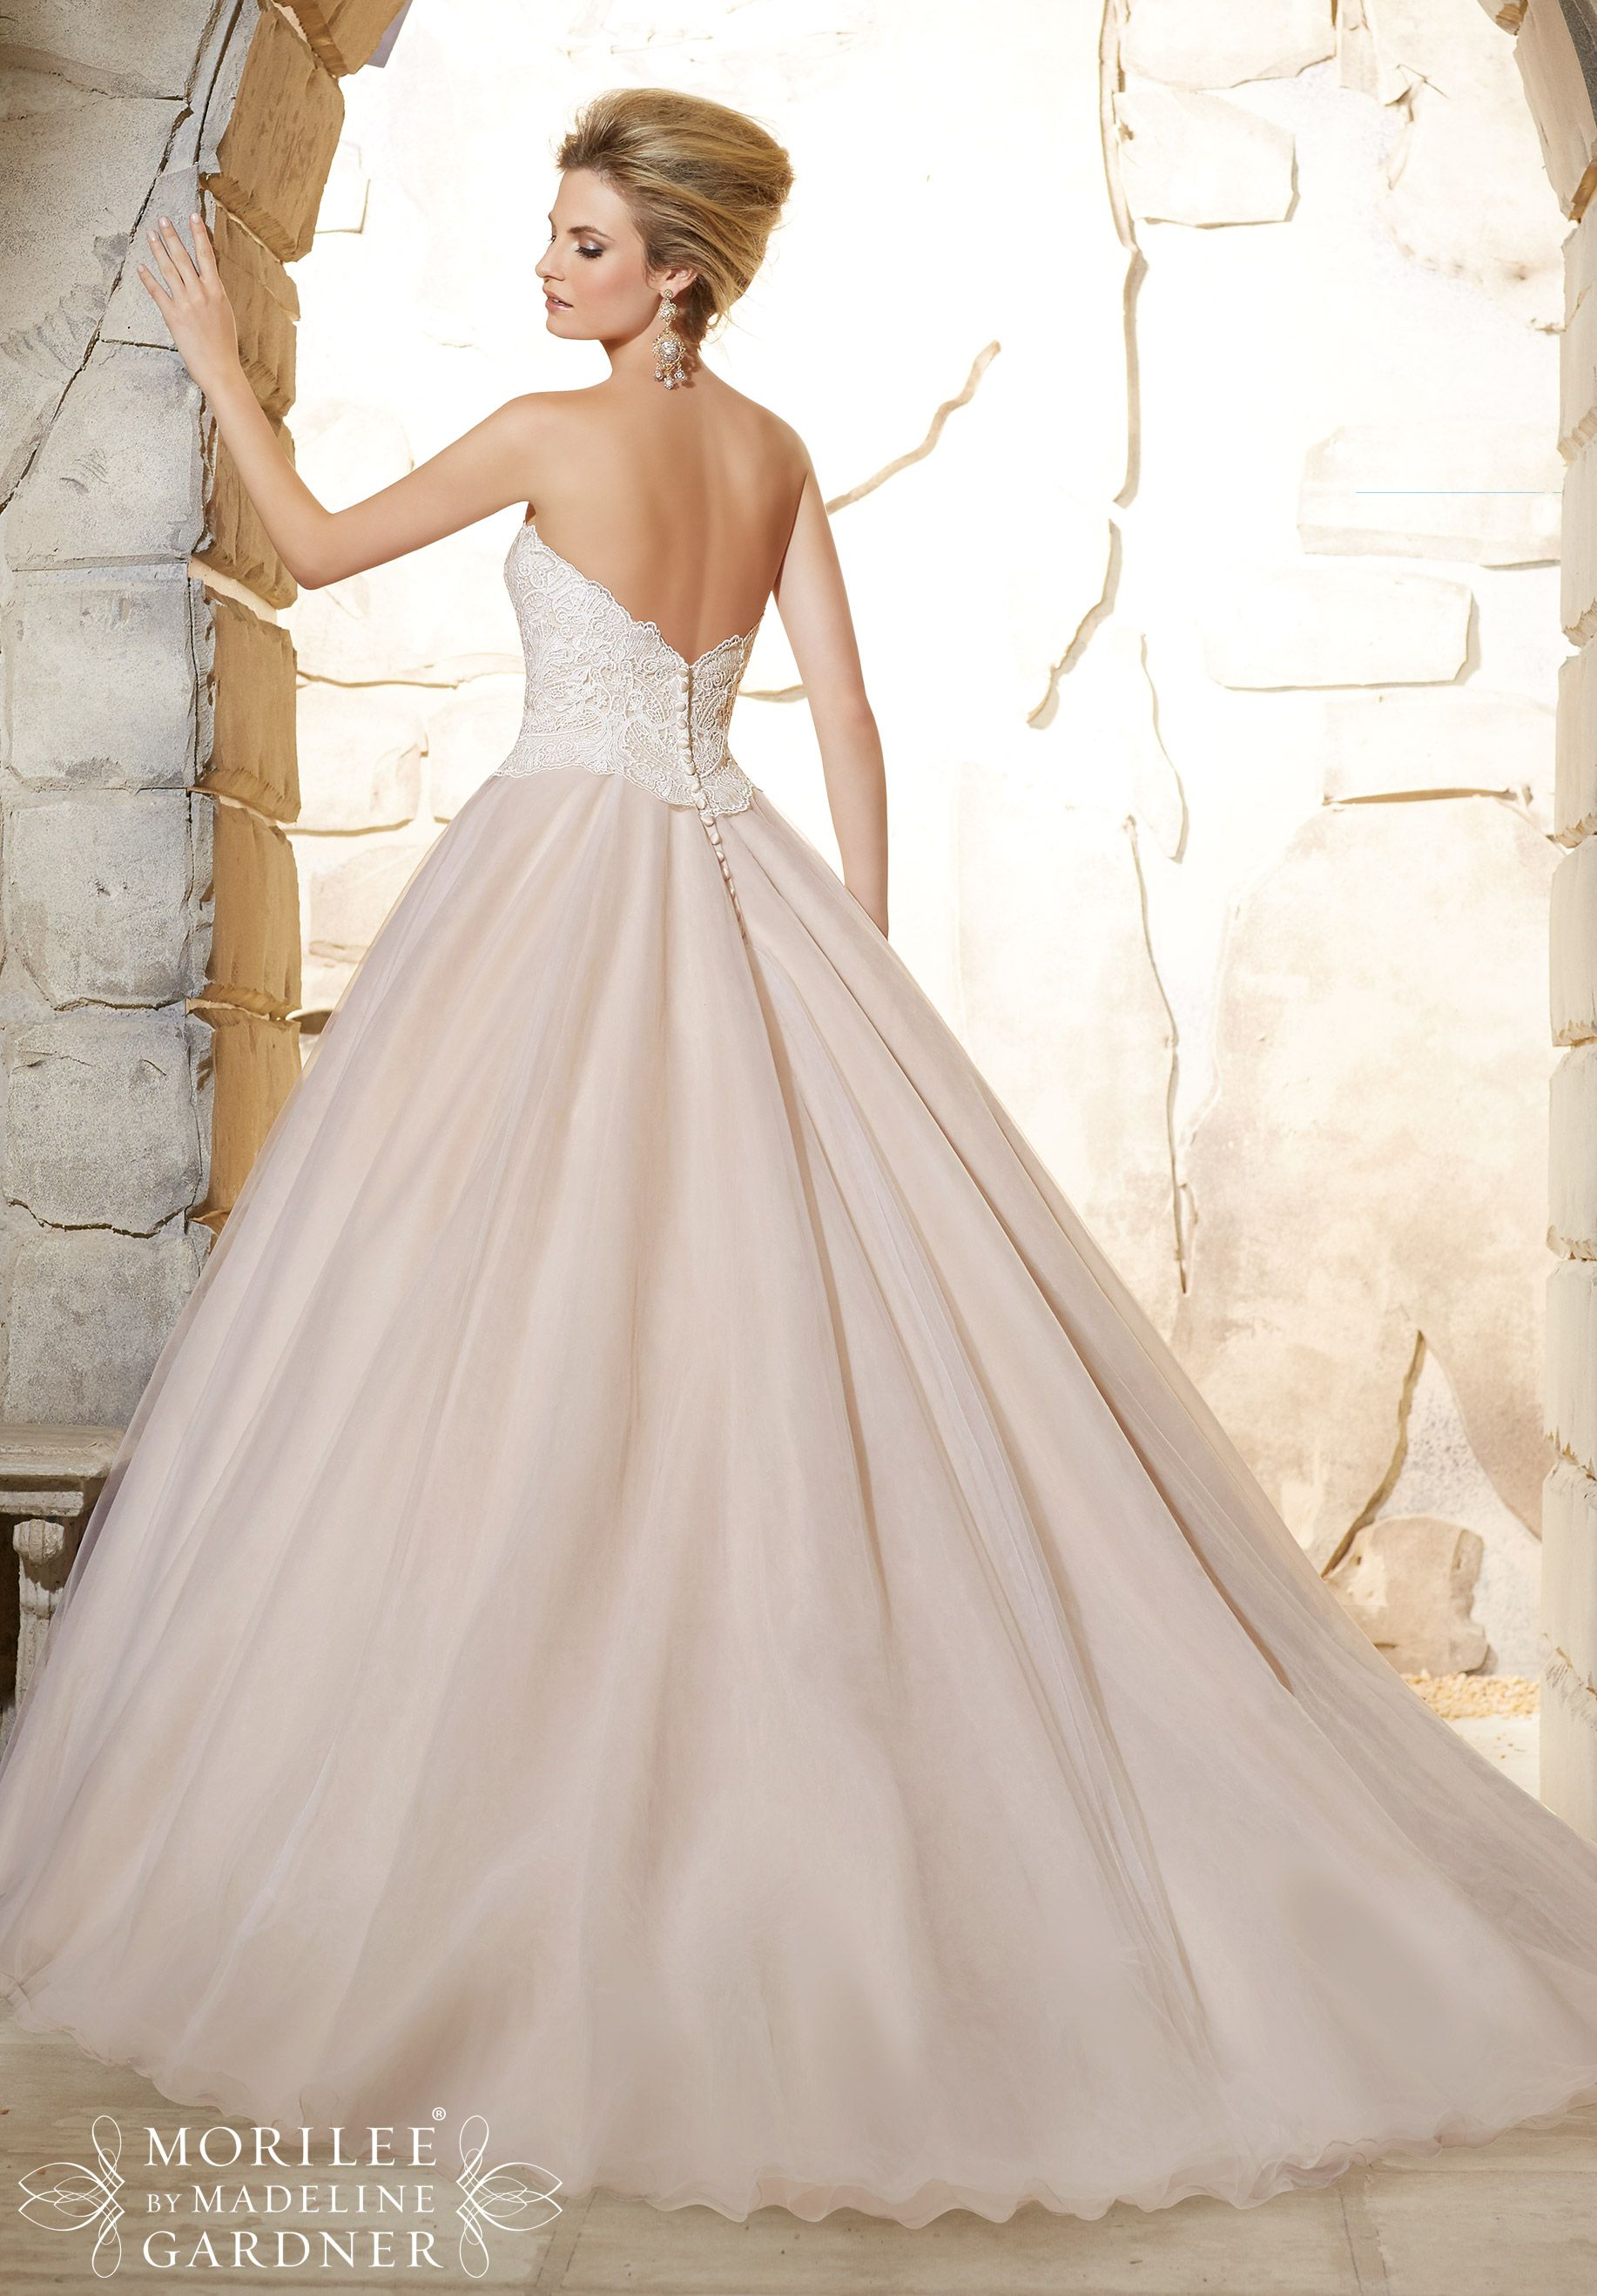 Wedding dresses bridal gowns wedding gowns by designer morilee wedding dresses bridal gowns wedding gowns by designer morilee dress style 2777 ombrellifo Choice Image